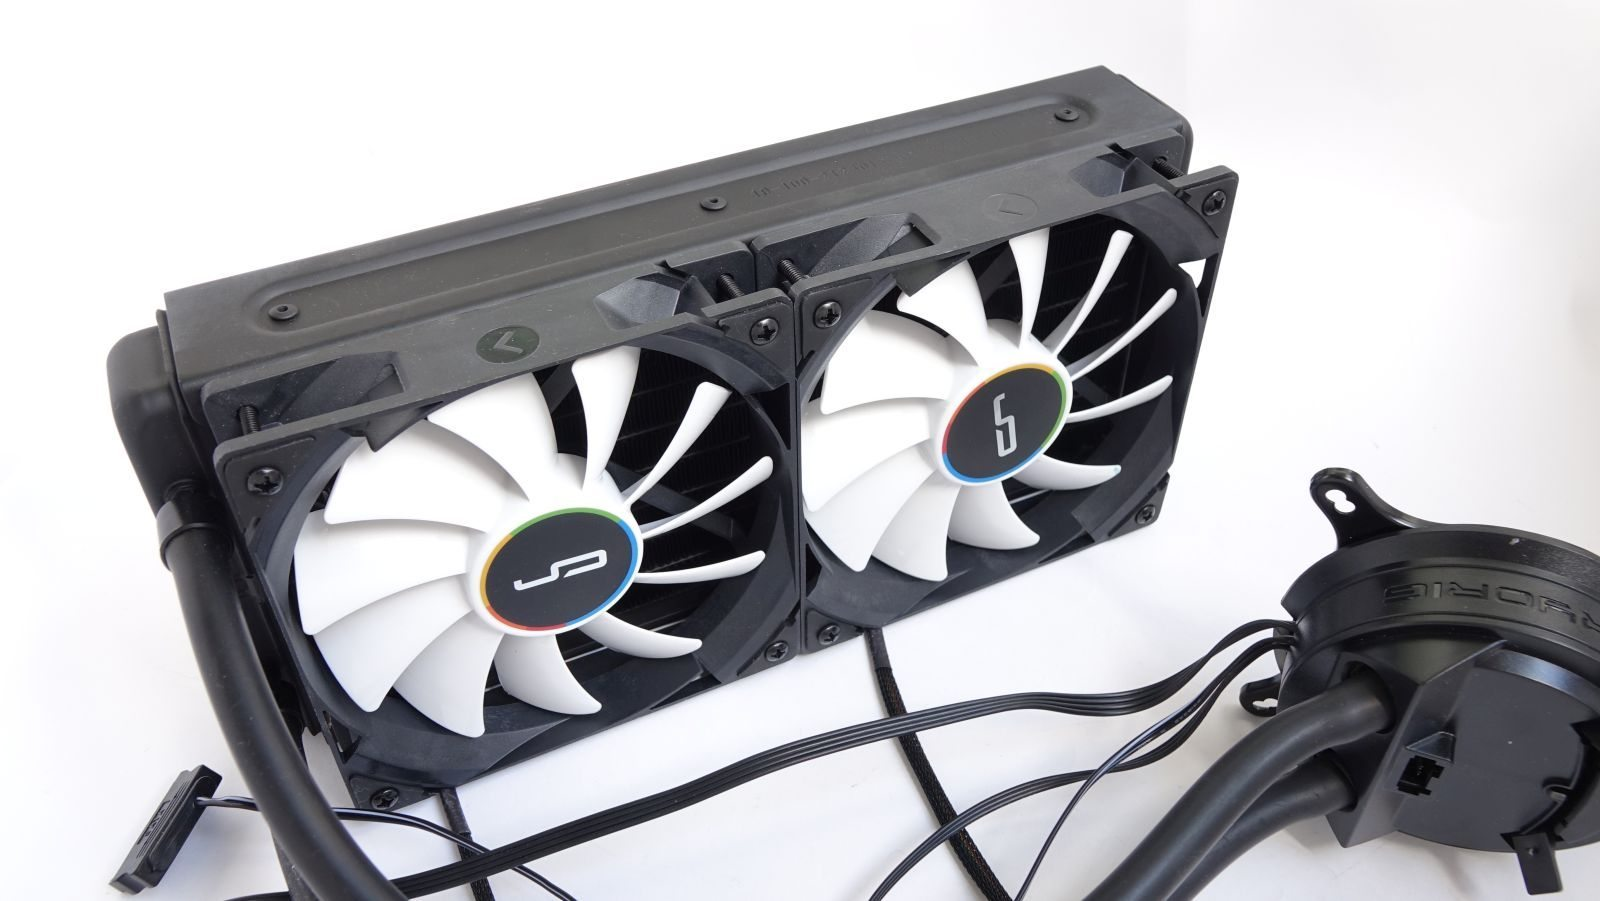 Cryorig A40 Ultimate radiator and fans